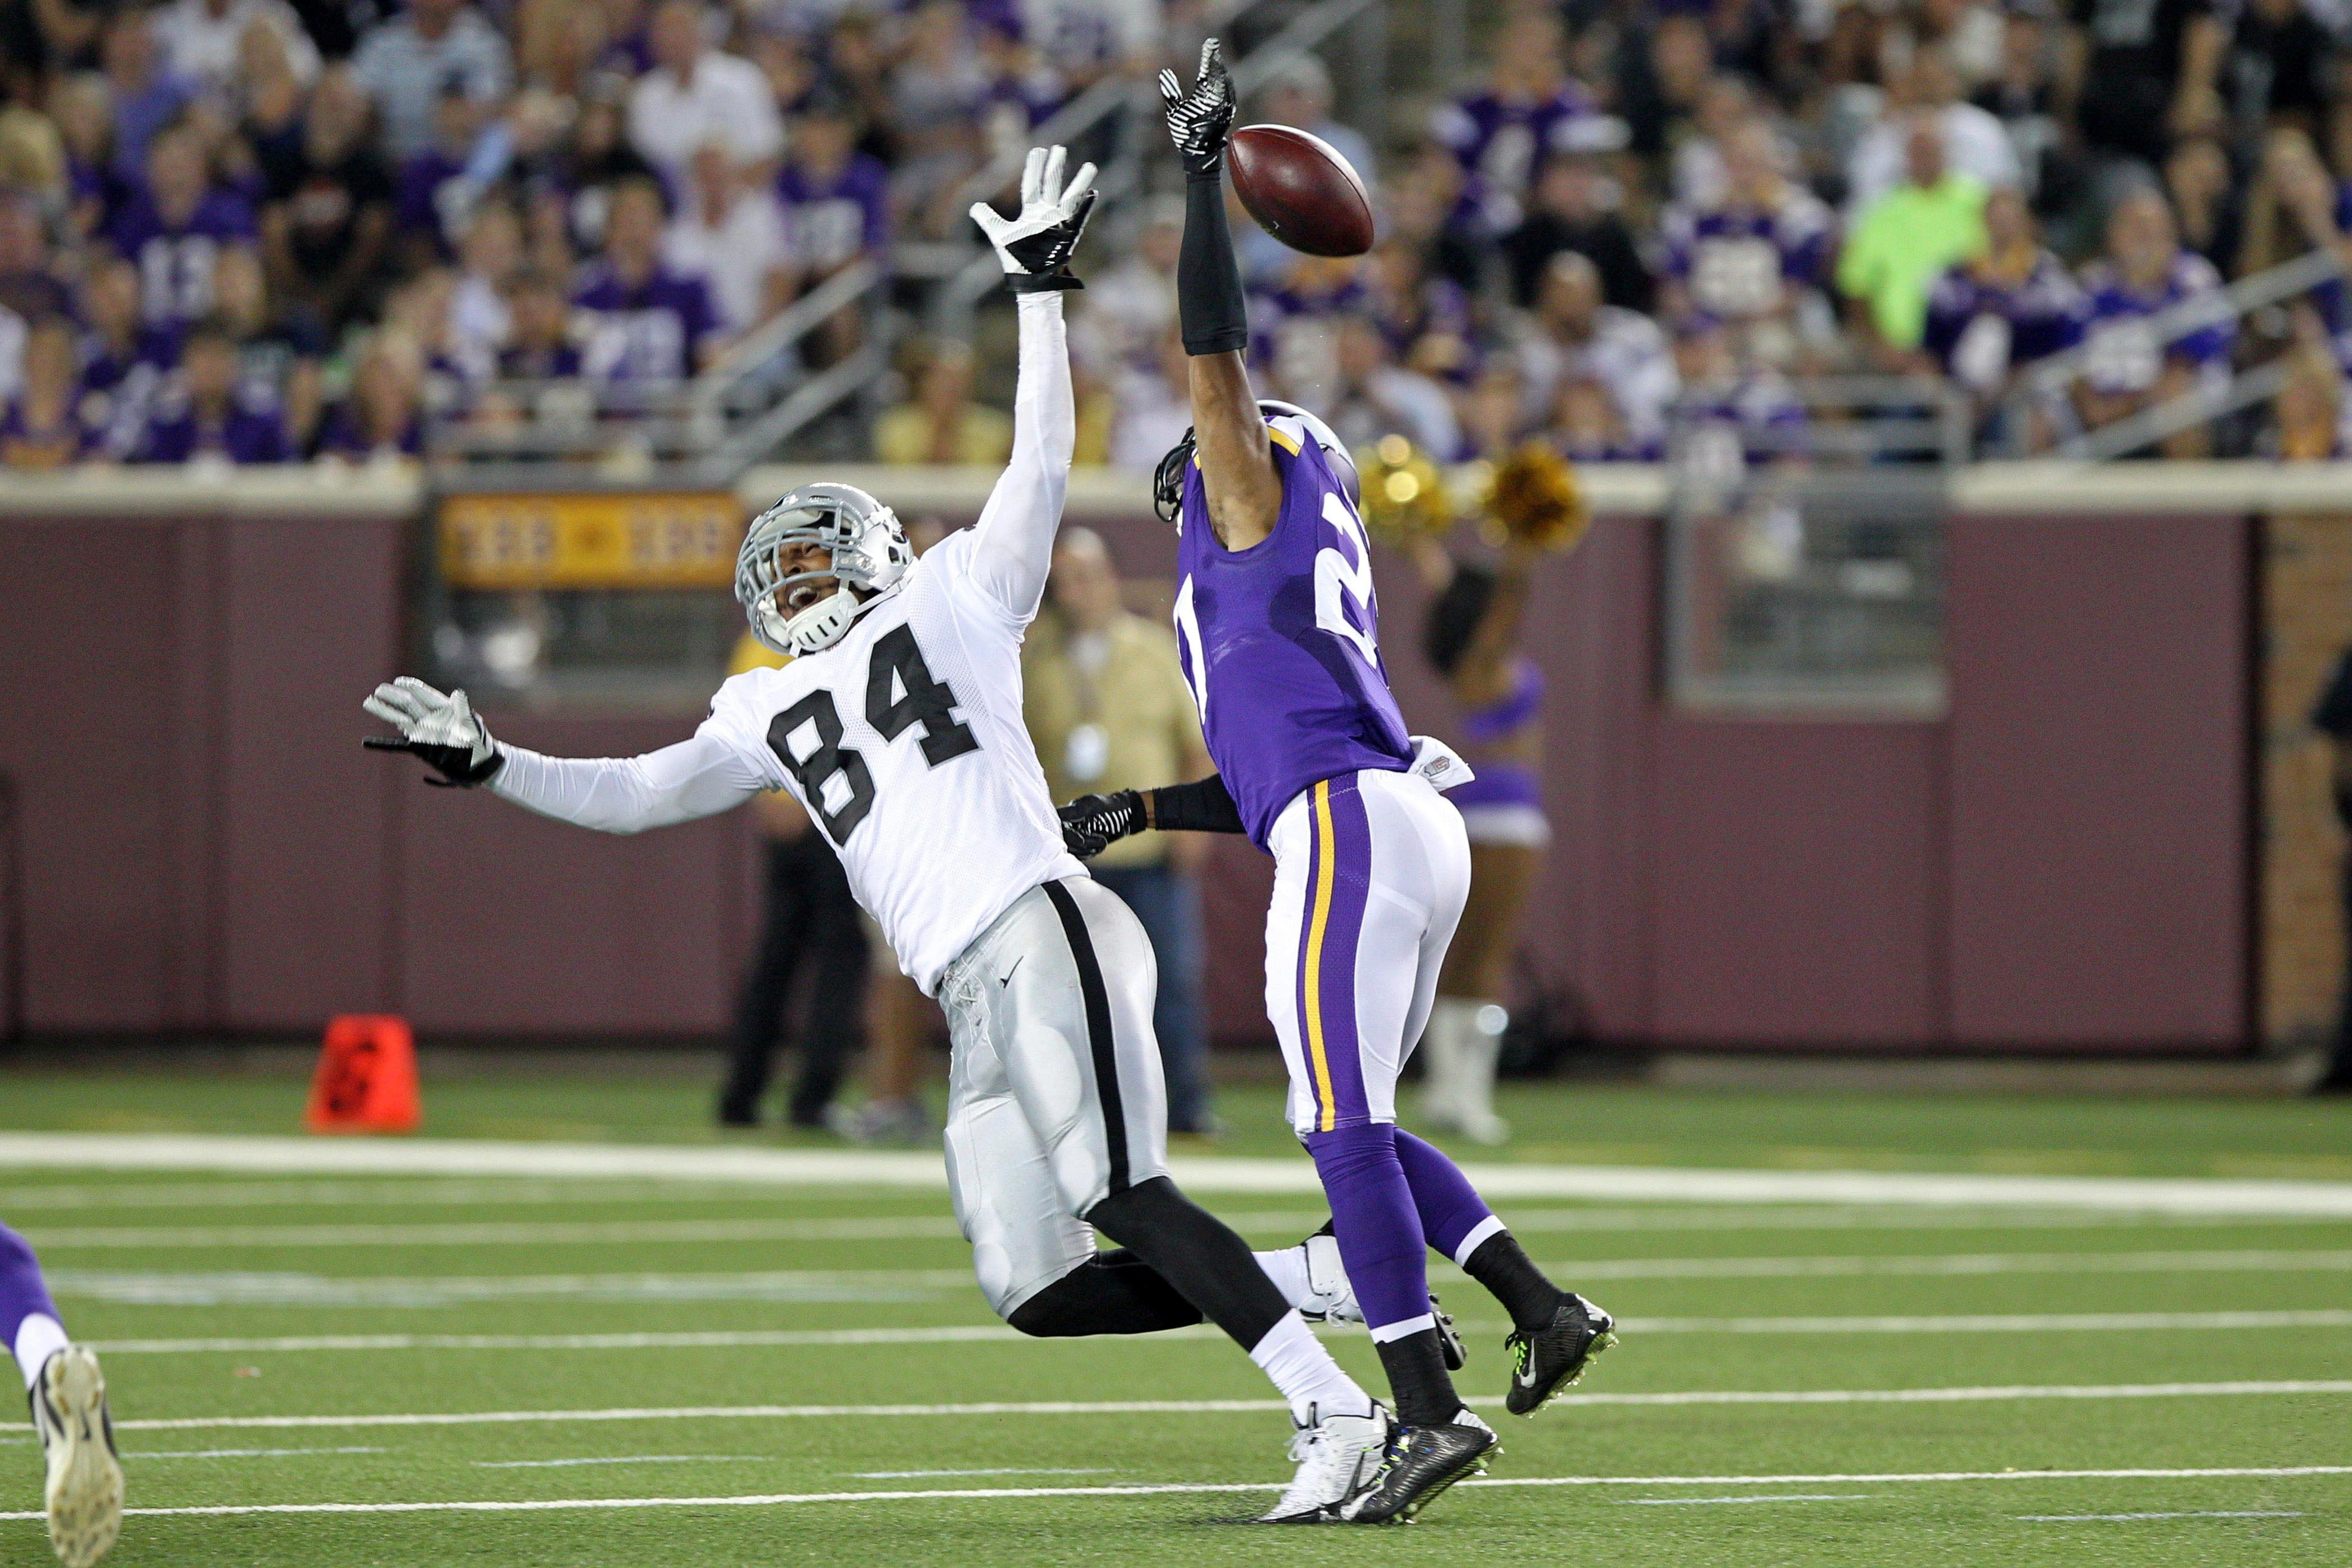 This is a Vikings defensive back breaking up a pass. WHAT IS THIS EVIL WIZARDRY AND WILL IT CONTINUE?